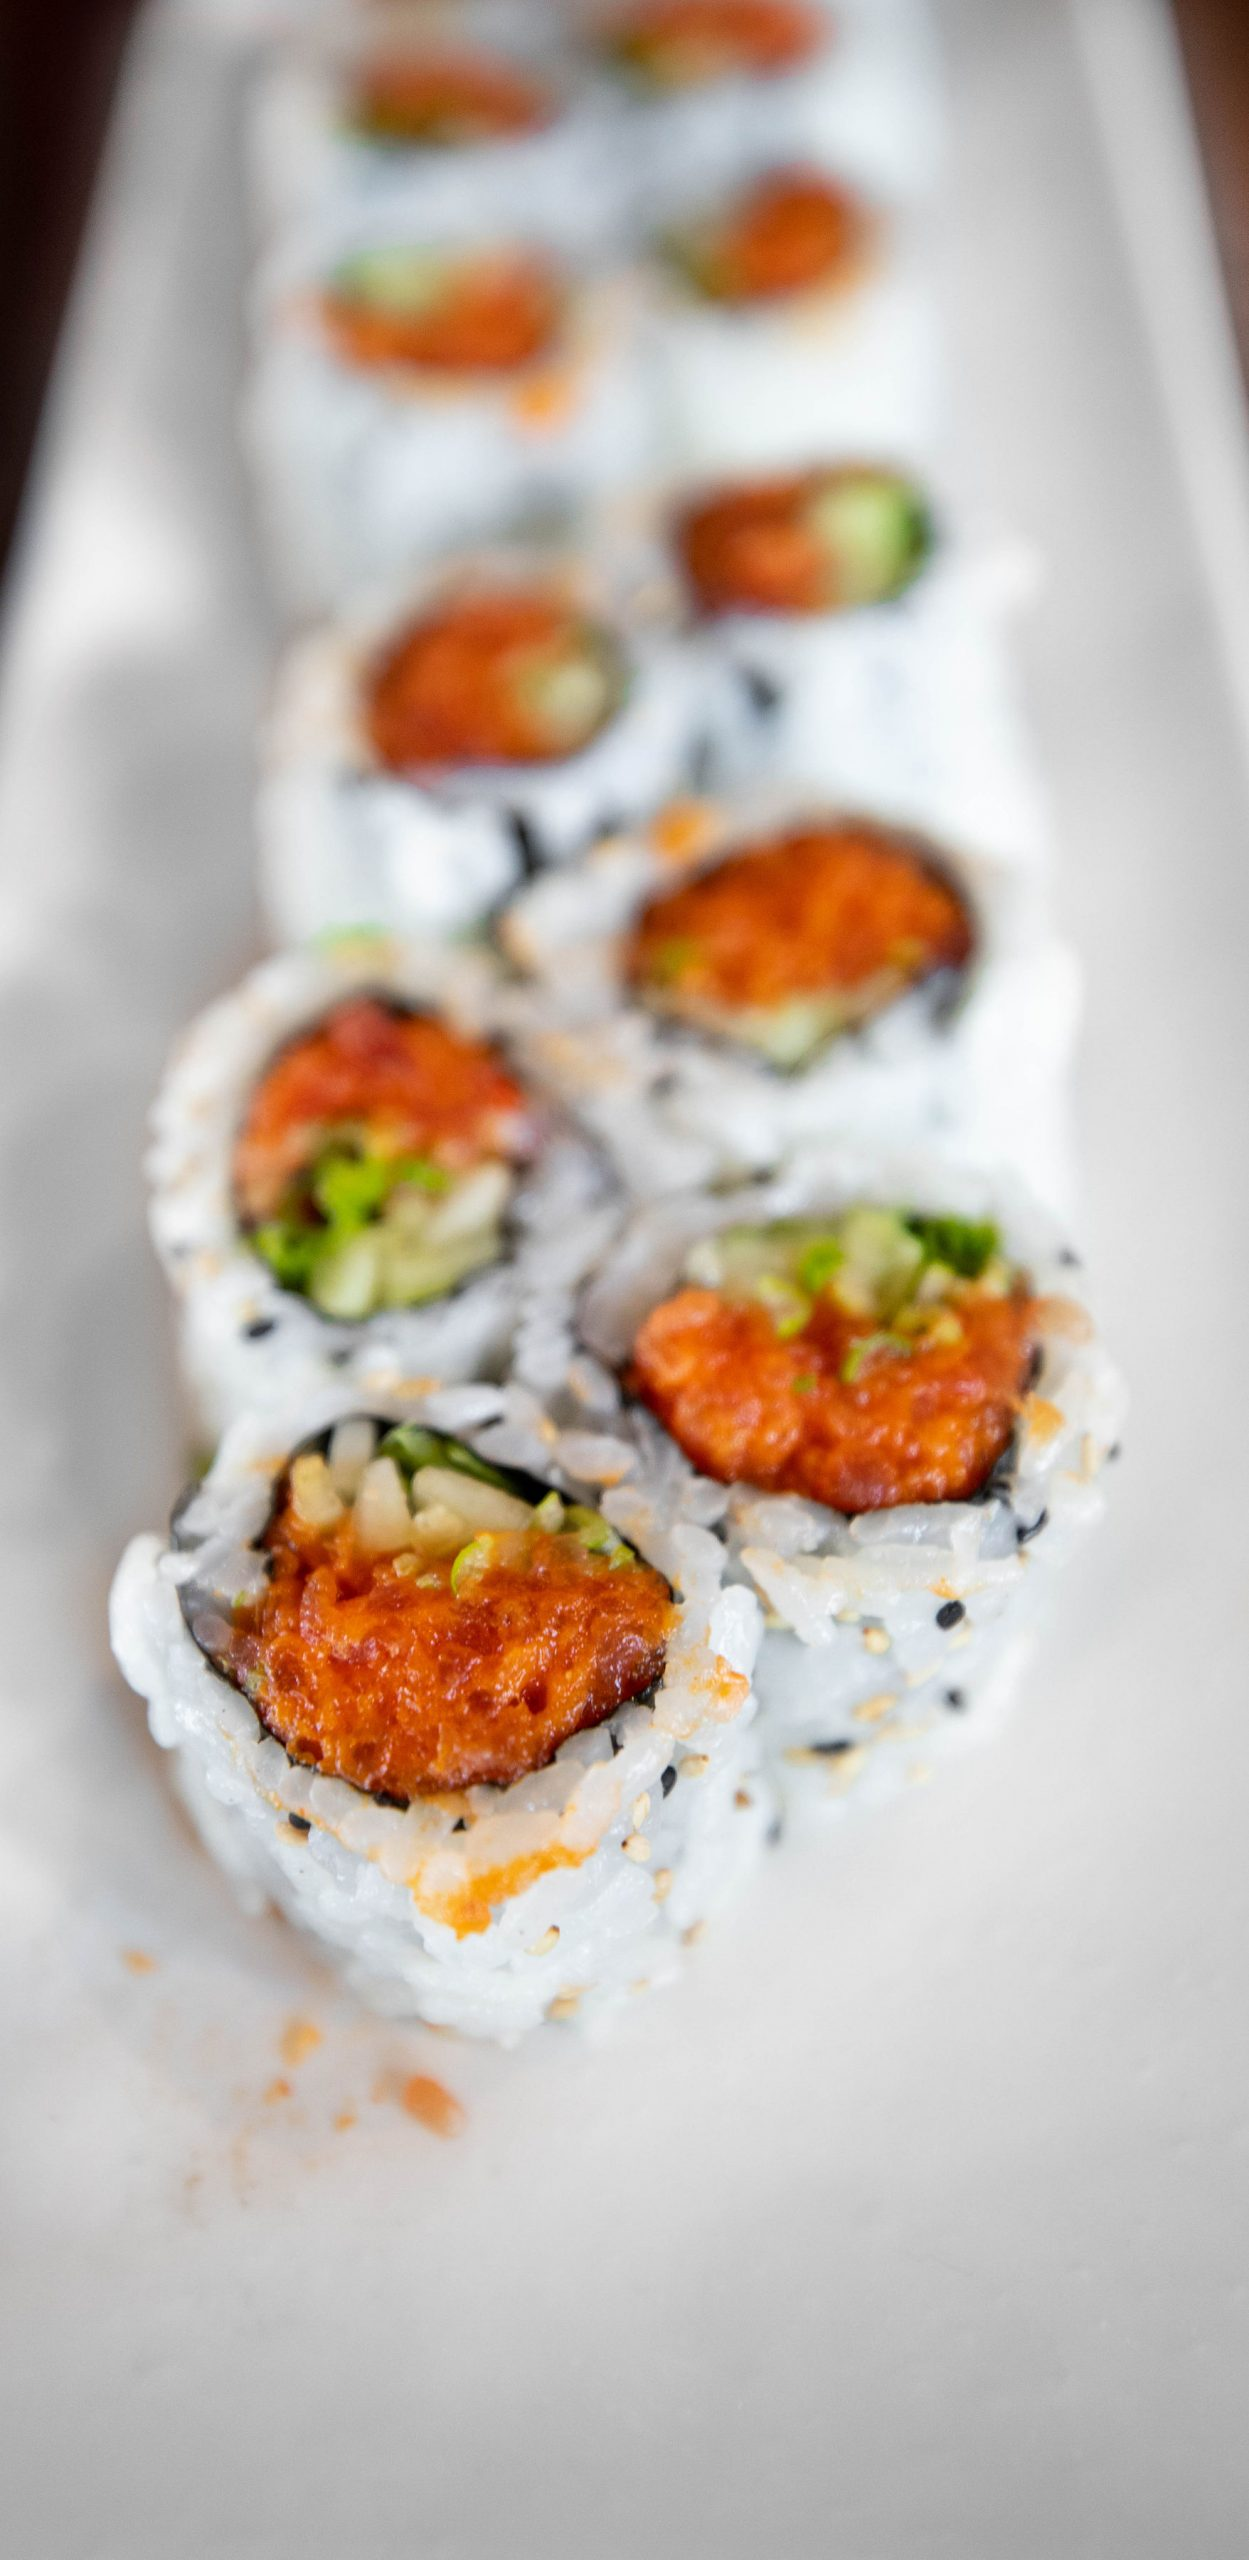 Spicy Tuna Rolls at Rükuya Japanese, Chinese Thai Restaurant Bento Box Lunch in Georgetown Washington DC photographed by Luxury Travel Writer Annie Fairfax